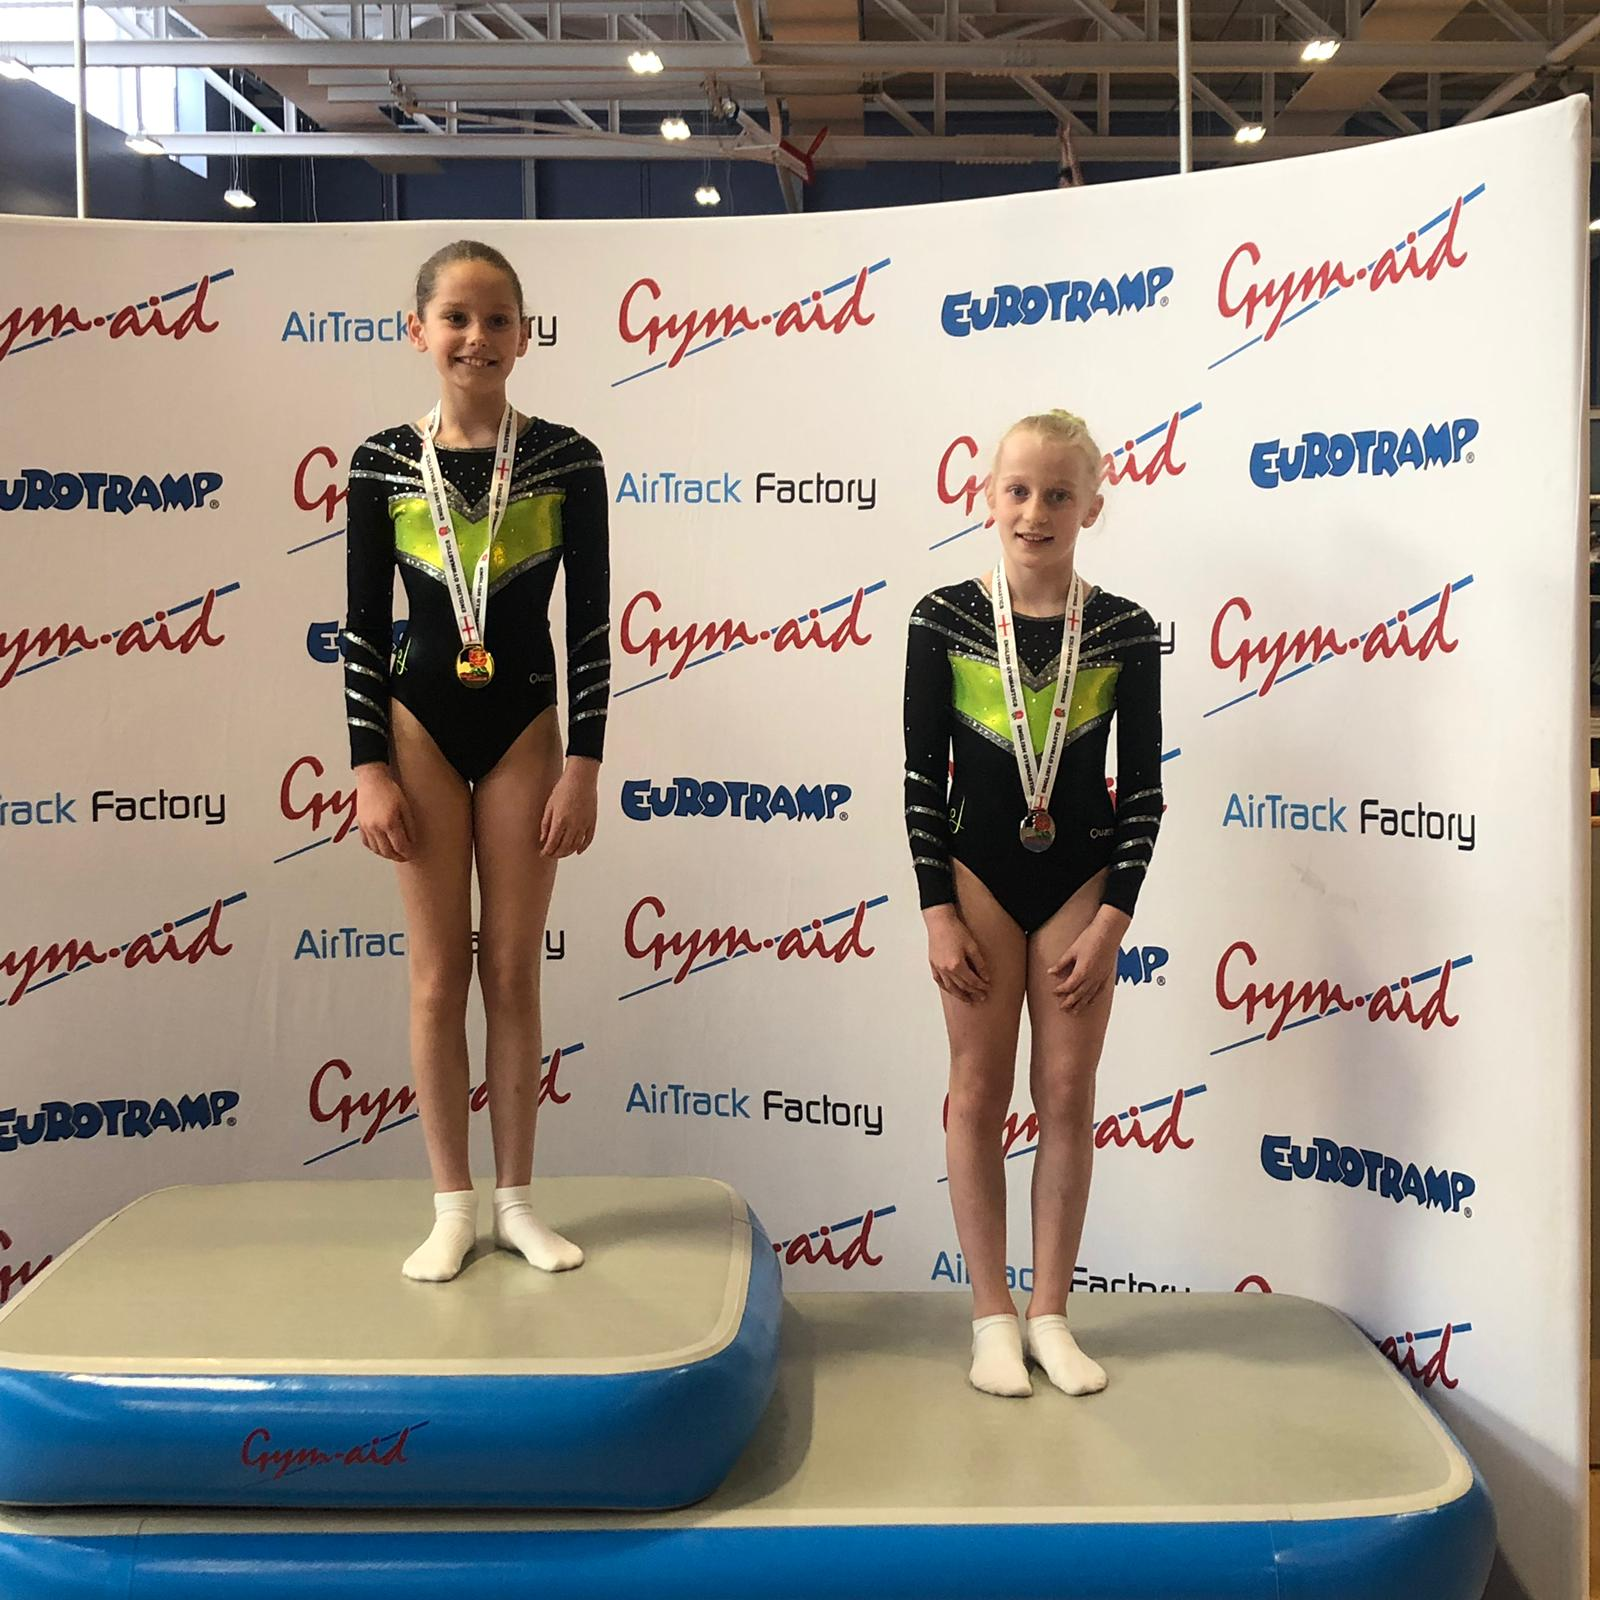 af7bef8a f875 45ff 8ecd 4bf99242106b - Medals for Chloe and Holly at English Qualifier 1